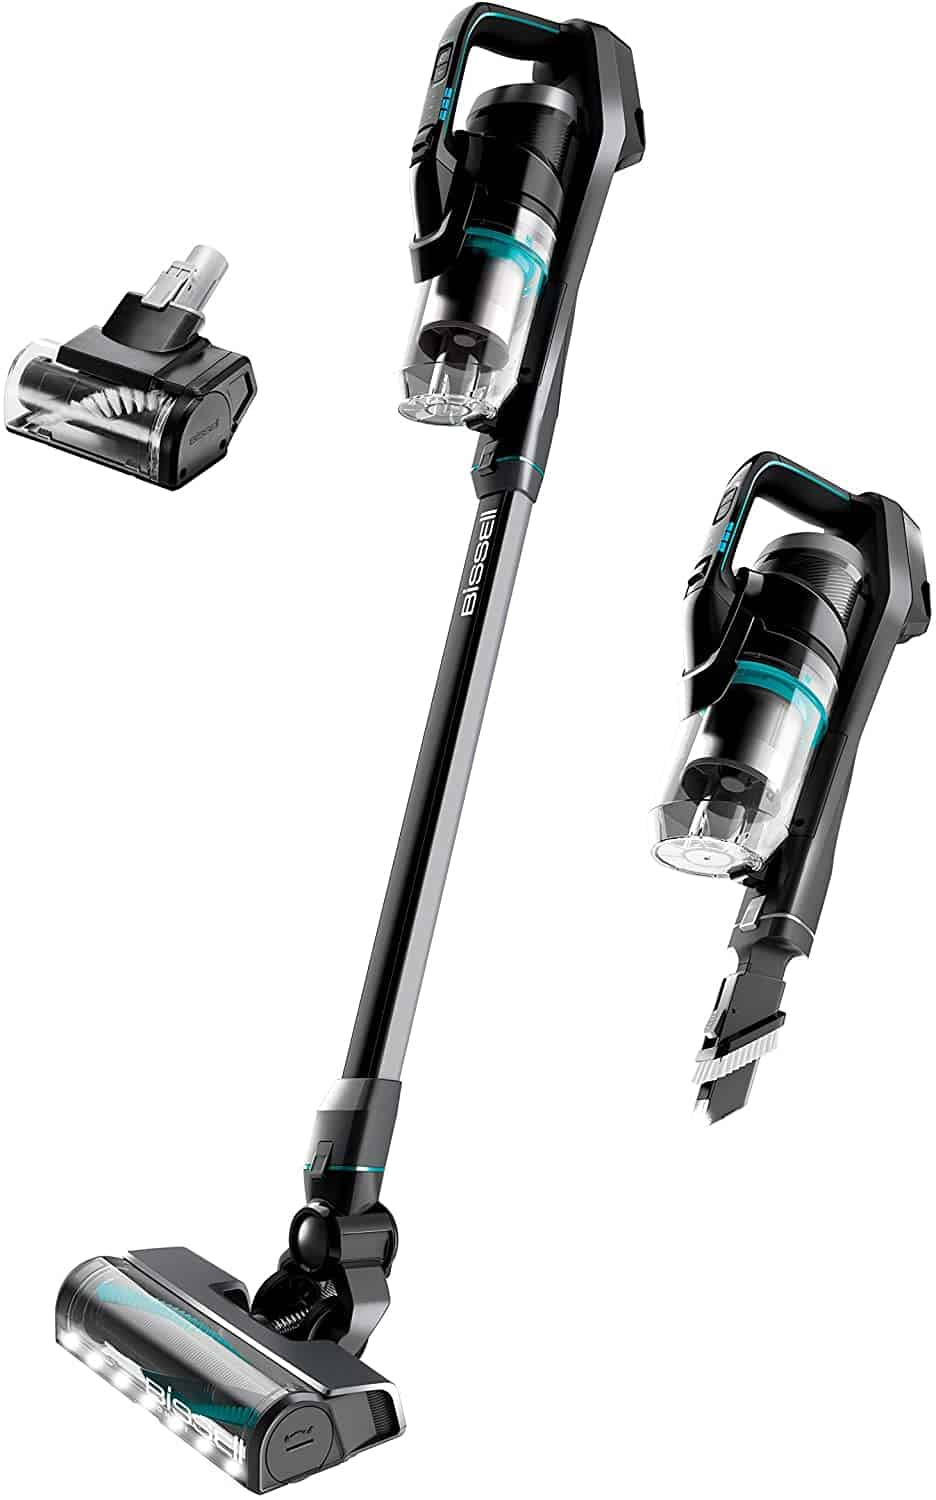 Up to 47% off Bissell products